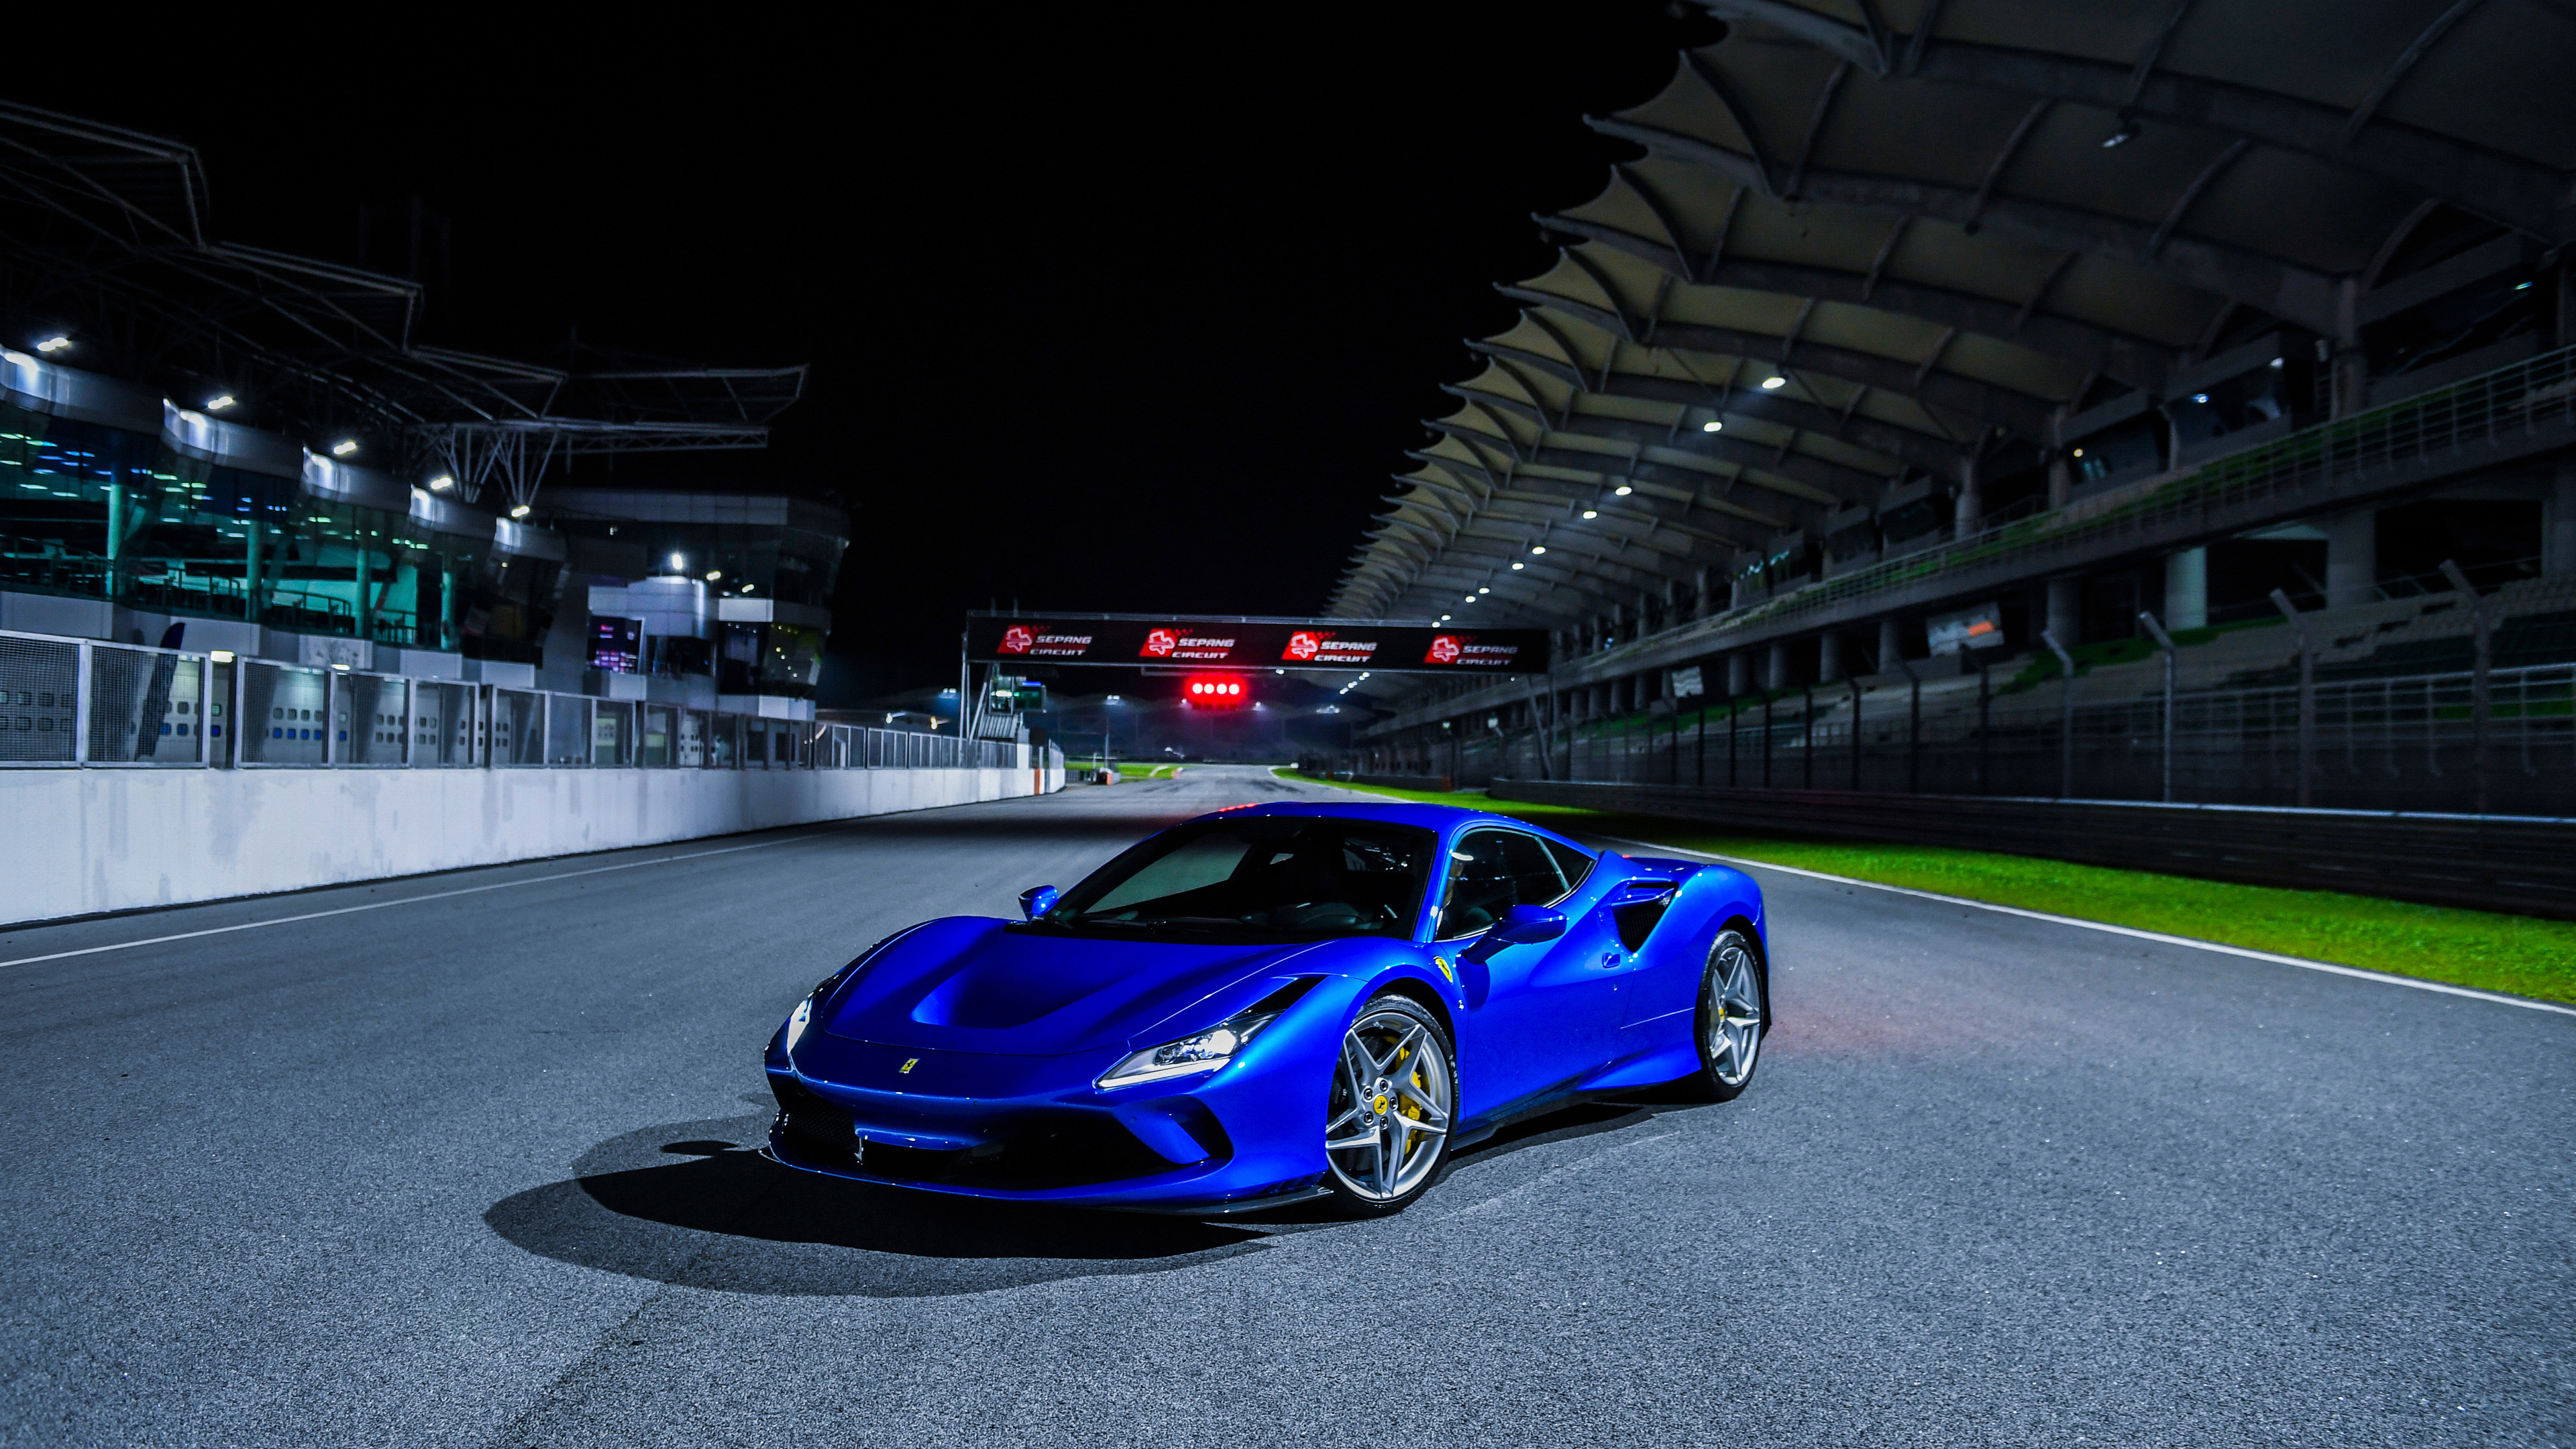 ferrari f8 tributo 2019 4k new 1559764653 - Ferrari F8 Tributo 2019 4k New - hd-wallpapers, ferrari wallpapers, ferrari f8 tributo wallpapers, cars wallpapers, 4k-wallpapers, 2019 cars wallpapers